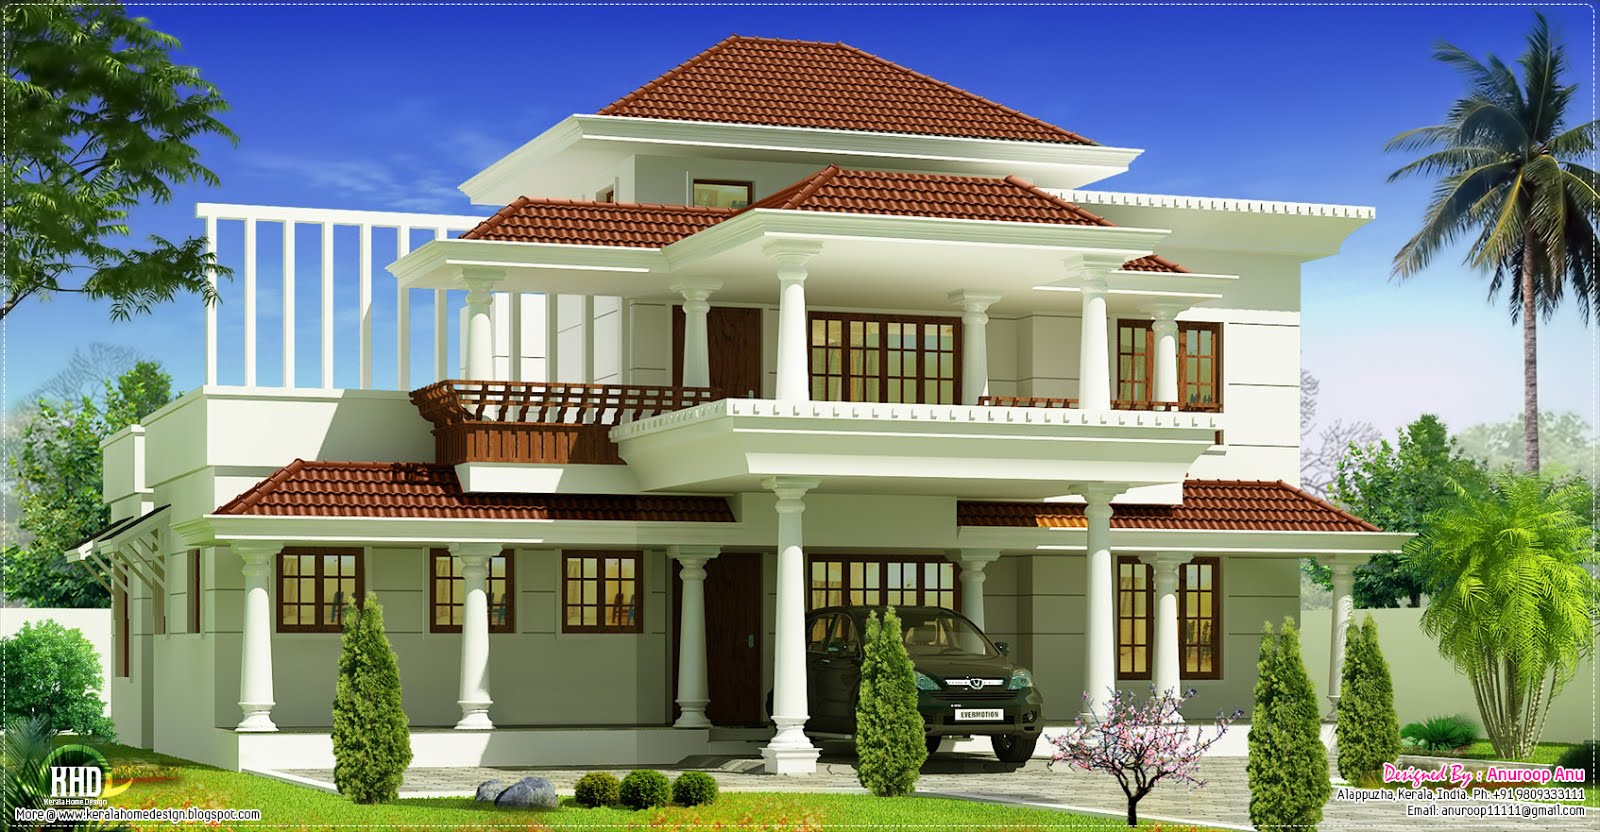 kerala house models houses plans designs. Black Bedroom Furniture Sets. Home Design Ideas